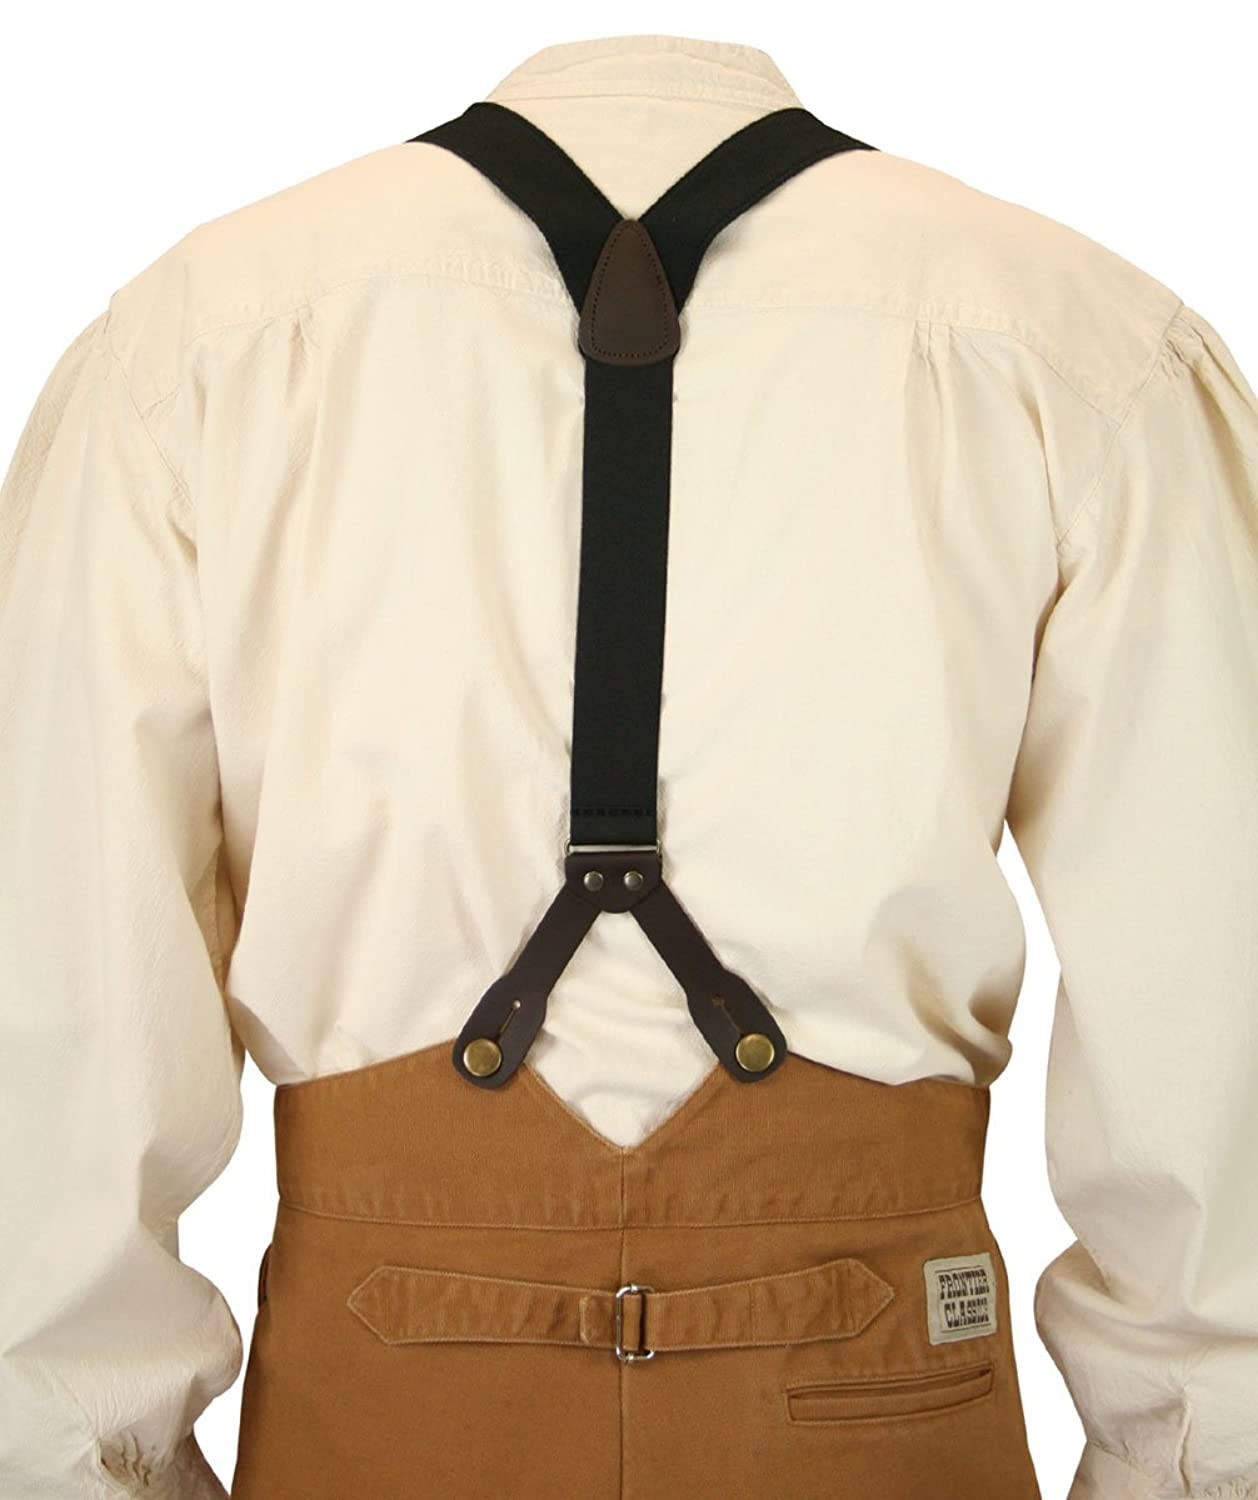 Dress in Great Gatsby Clothes for Men Historical Emporium Mens Canvas Stagecoach Y-Back Suspenders $27.95 AT vintagedancer.com